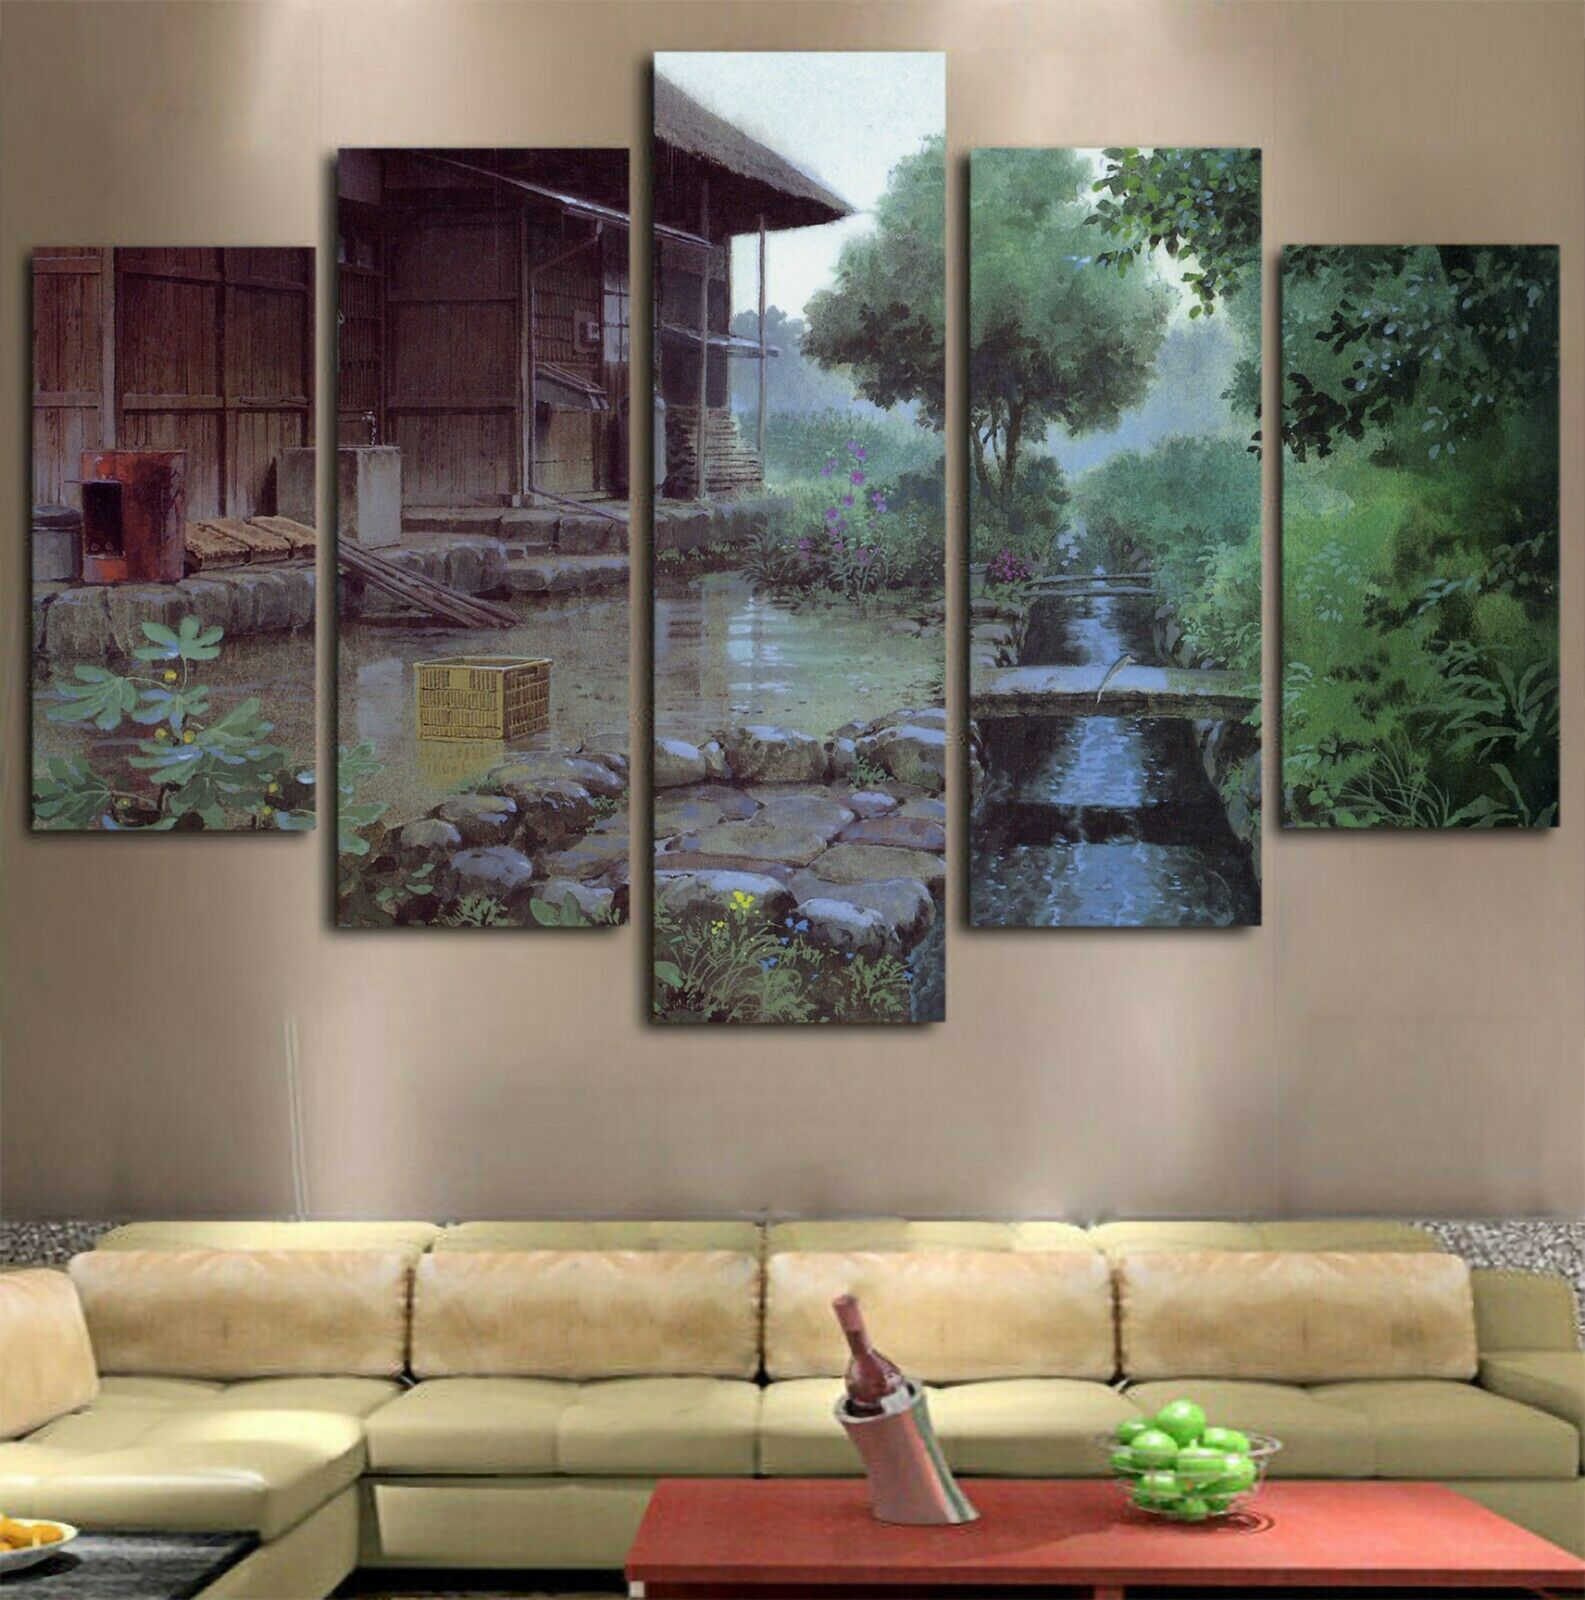 5pcs Ghibli Studio Totoro House Modern Art Canvas Wall Art Home Decor Framed Ebay Modern Canvas Art Wall Canvas Modern Art Pictures